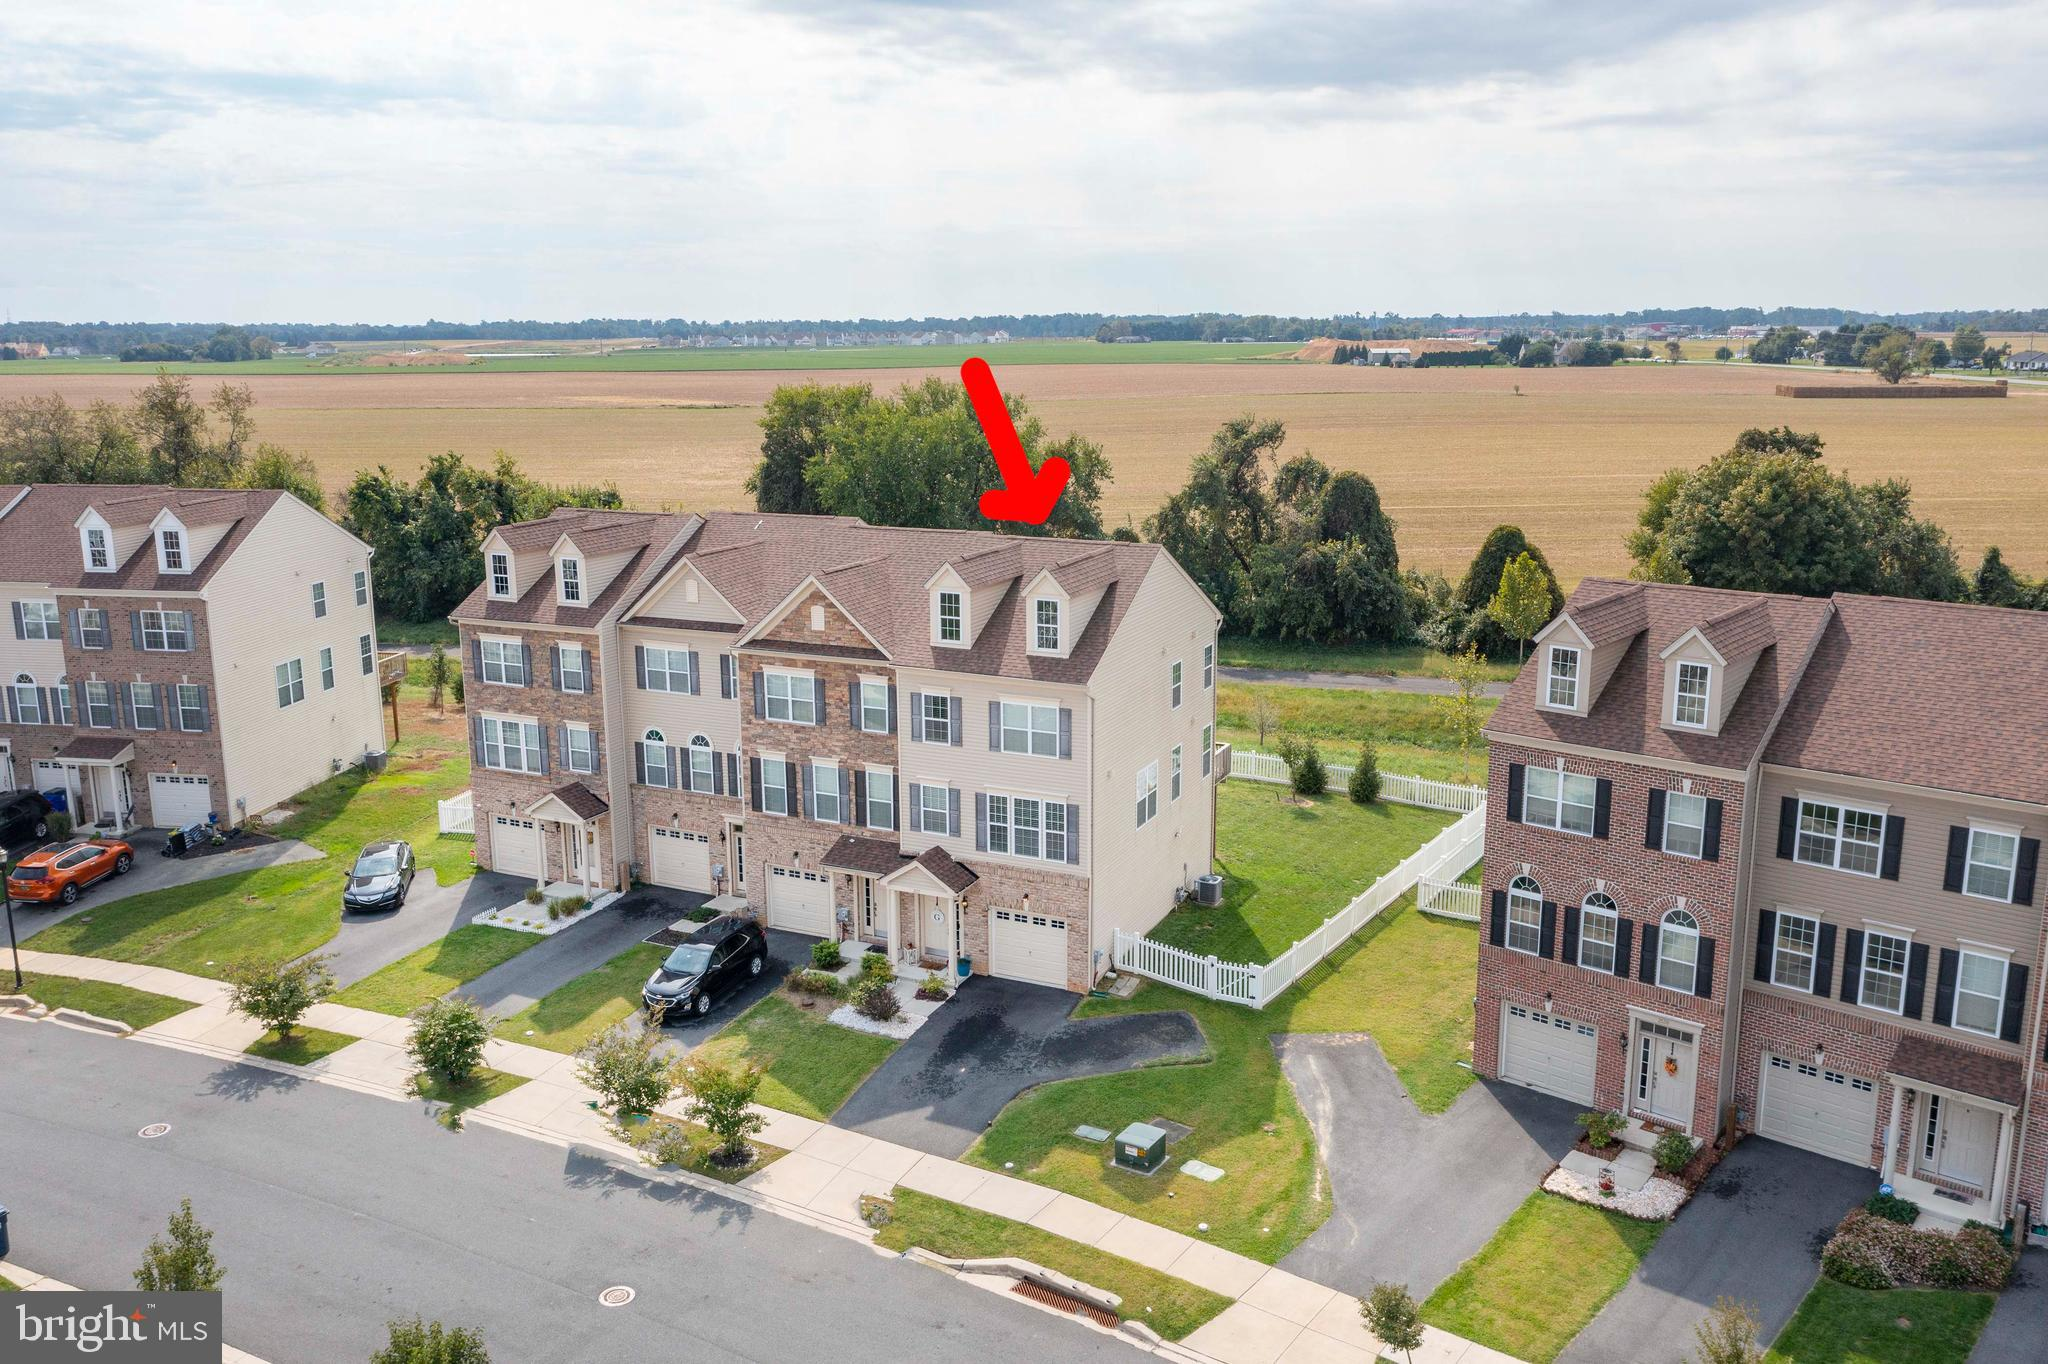 """**Highest & Final Deadline 10/3 at 8pm. ** Seller to make a decision by Monday at 1pm Beautiful End-Unit townhome located in the highly sought-after Village of Bayberry in the award winning Appoquinimink School District. Enjoy the benefits of property ownership in this low-maintenance 3-bedroom, 2.5-bathroom townhouse in a great community with plenty of free space, tree lined streets, parks, club house and community lake stocked with fish and scenic views. The first-floor entry includes modern colors with stylish durable wood look ceramic tile flooring, laundry room, utility room and Bonus room that leads to your new fully fenced backyard. On the main level the open floor plan offers an inviting entertaining and living space for you and your guests. The modern layout is created by the living room, dining room and kitchen all flowing together with hardwood floors. The family room offers plenty of natural light with the additional windows in an end-unit. The spacious and open kitchen features 42"""" white cabinets, granite counters and an island. The dining area also leads to a sliding door with access to the deck offering ample space along with beautiful views to enjoy your coffee or a good book and relaxation. Upstairs, the master suite has a large walk-in closet and the privacy of having your own full bathroom with tile flooring. Large 2nd and 3rd bedrooms are ideal for a home office, guest rooms, or nursery and share a full hall bath. Located only minutes from Schools, Parks, Hospitals, Shopping, Restaurants, Library, and with easy access to Rt. 1, Rt. 896 & Rt. 13. check out the deal on this lovely home and come make this one yours TODAY!!!"""